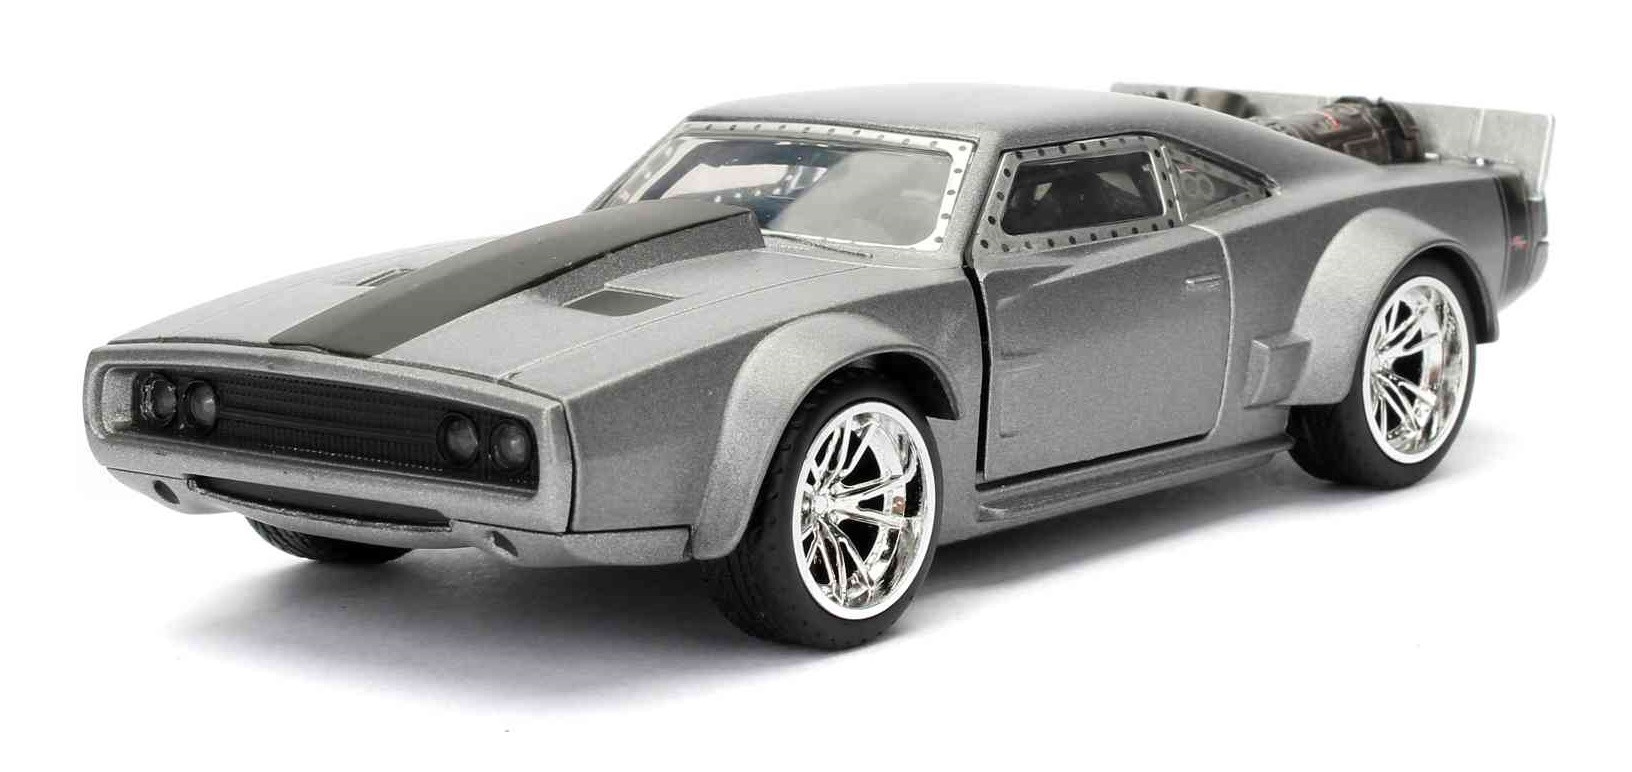 Jada - Diecast Fast & Furious 8 Ice Charger 1:32